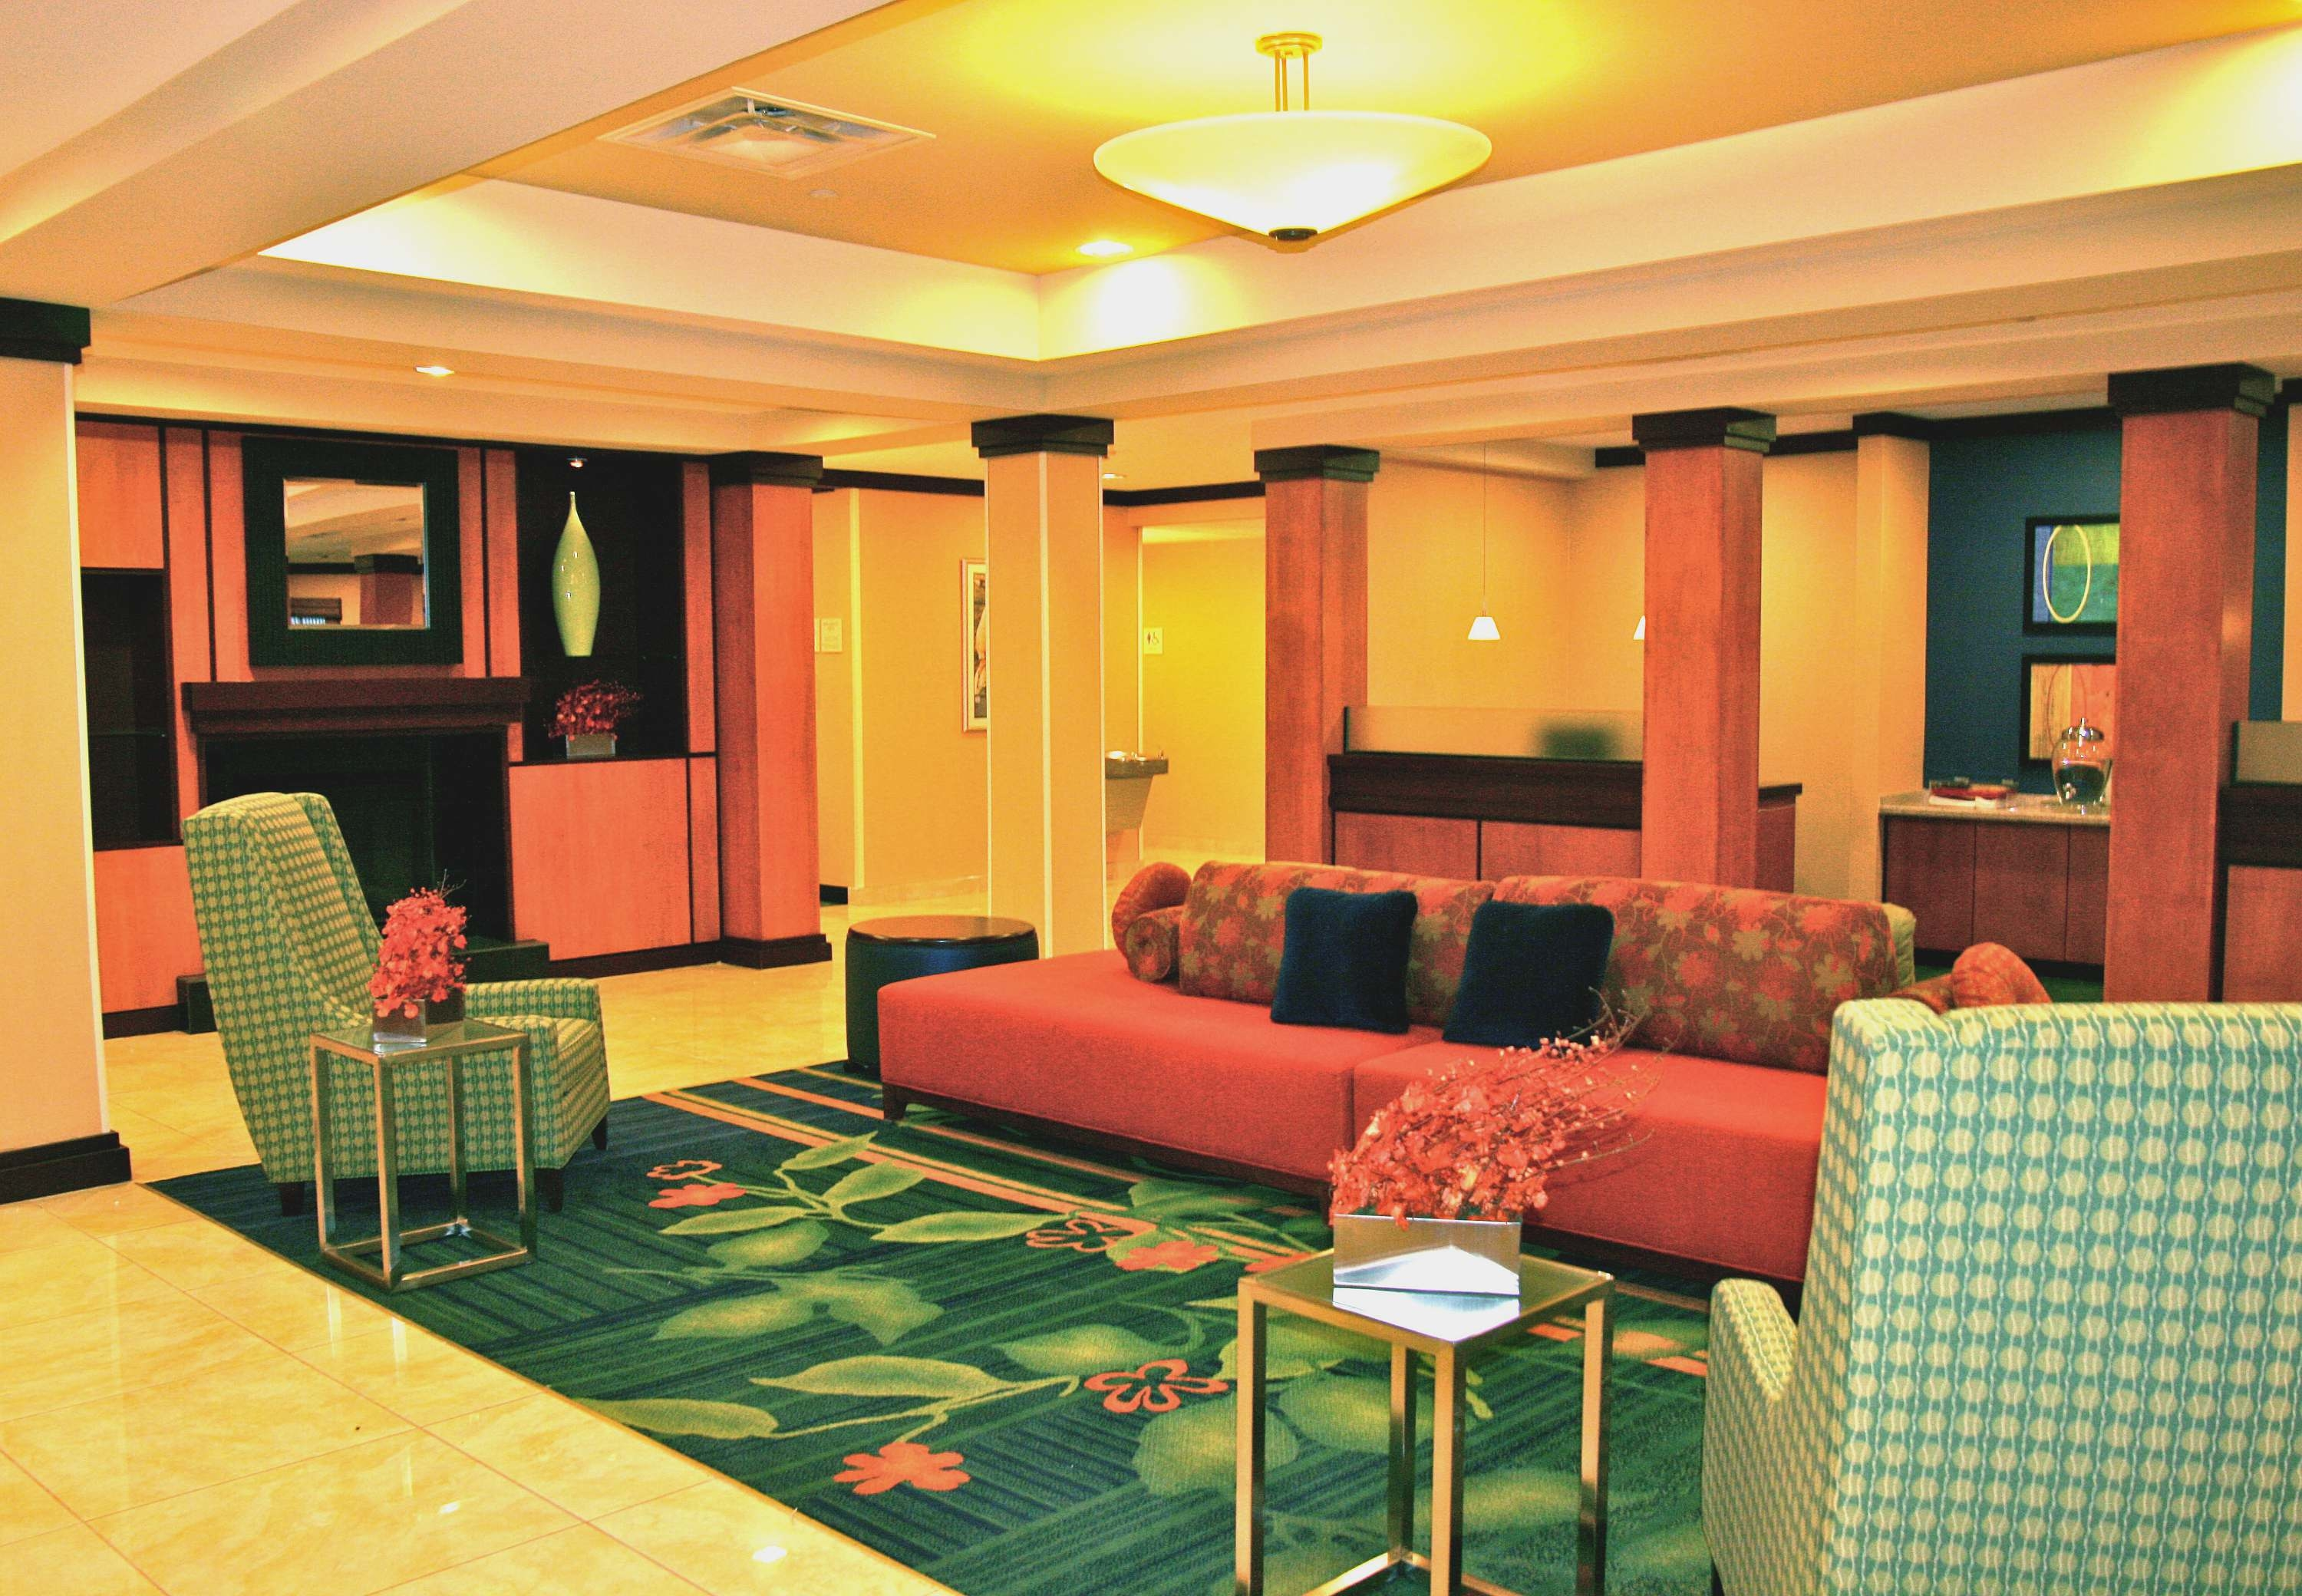 Fairfield Inn & Suites by Marriott Youngstown Austintown image 3